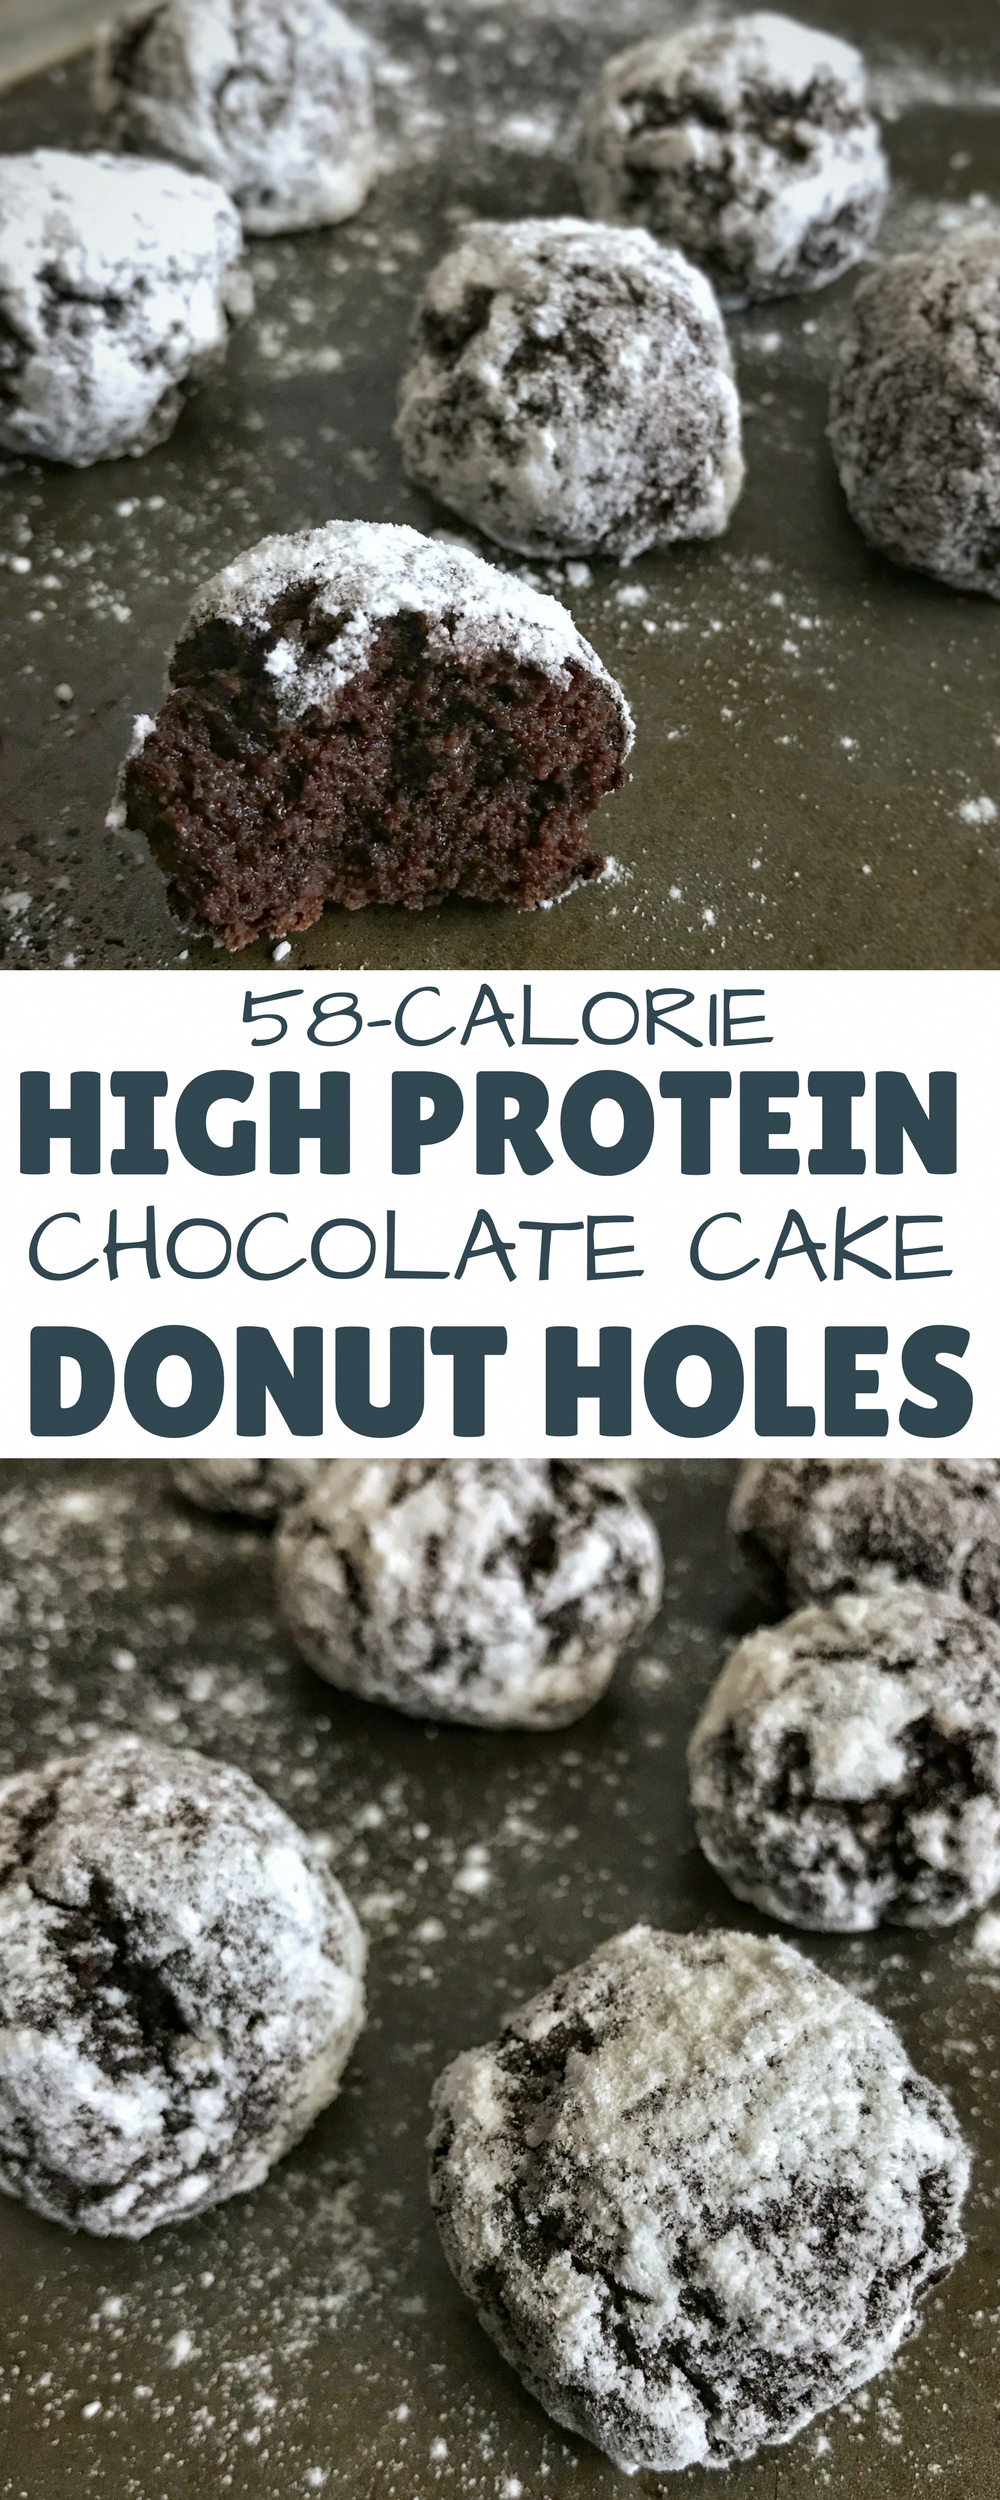 You'll never eat regular donut holes again after you try these chocolate cake protein donut holes with 5.5 grams of protein and only 58 calories per donut hole. They're the perfect fix for a sweet tooth or chocolate craving. via @masonfitdotcom #AmazingKetoRecipes #proteindonuts